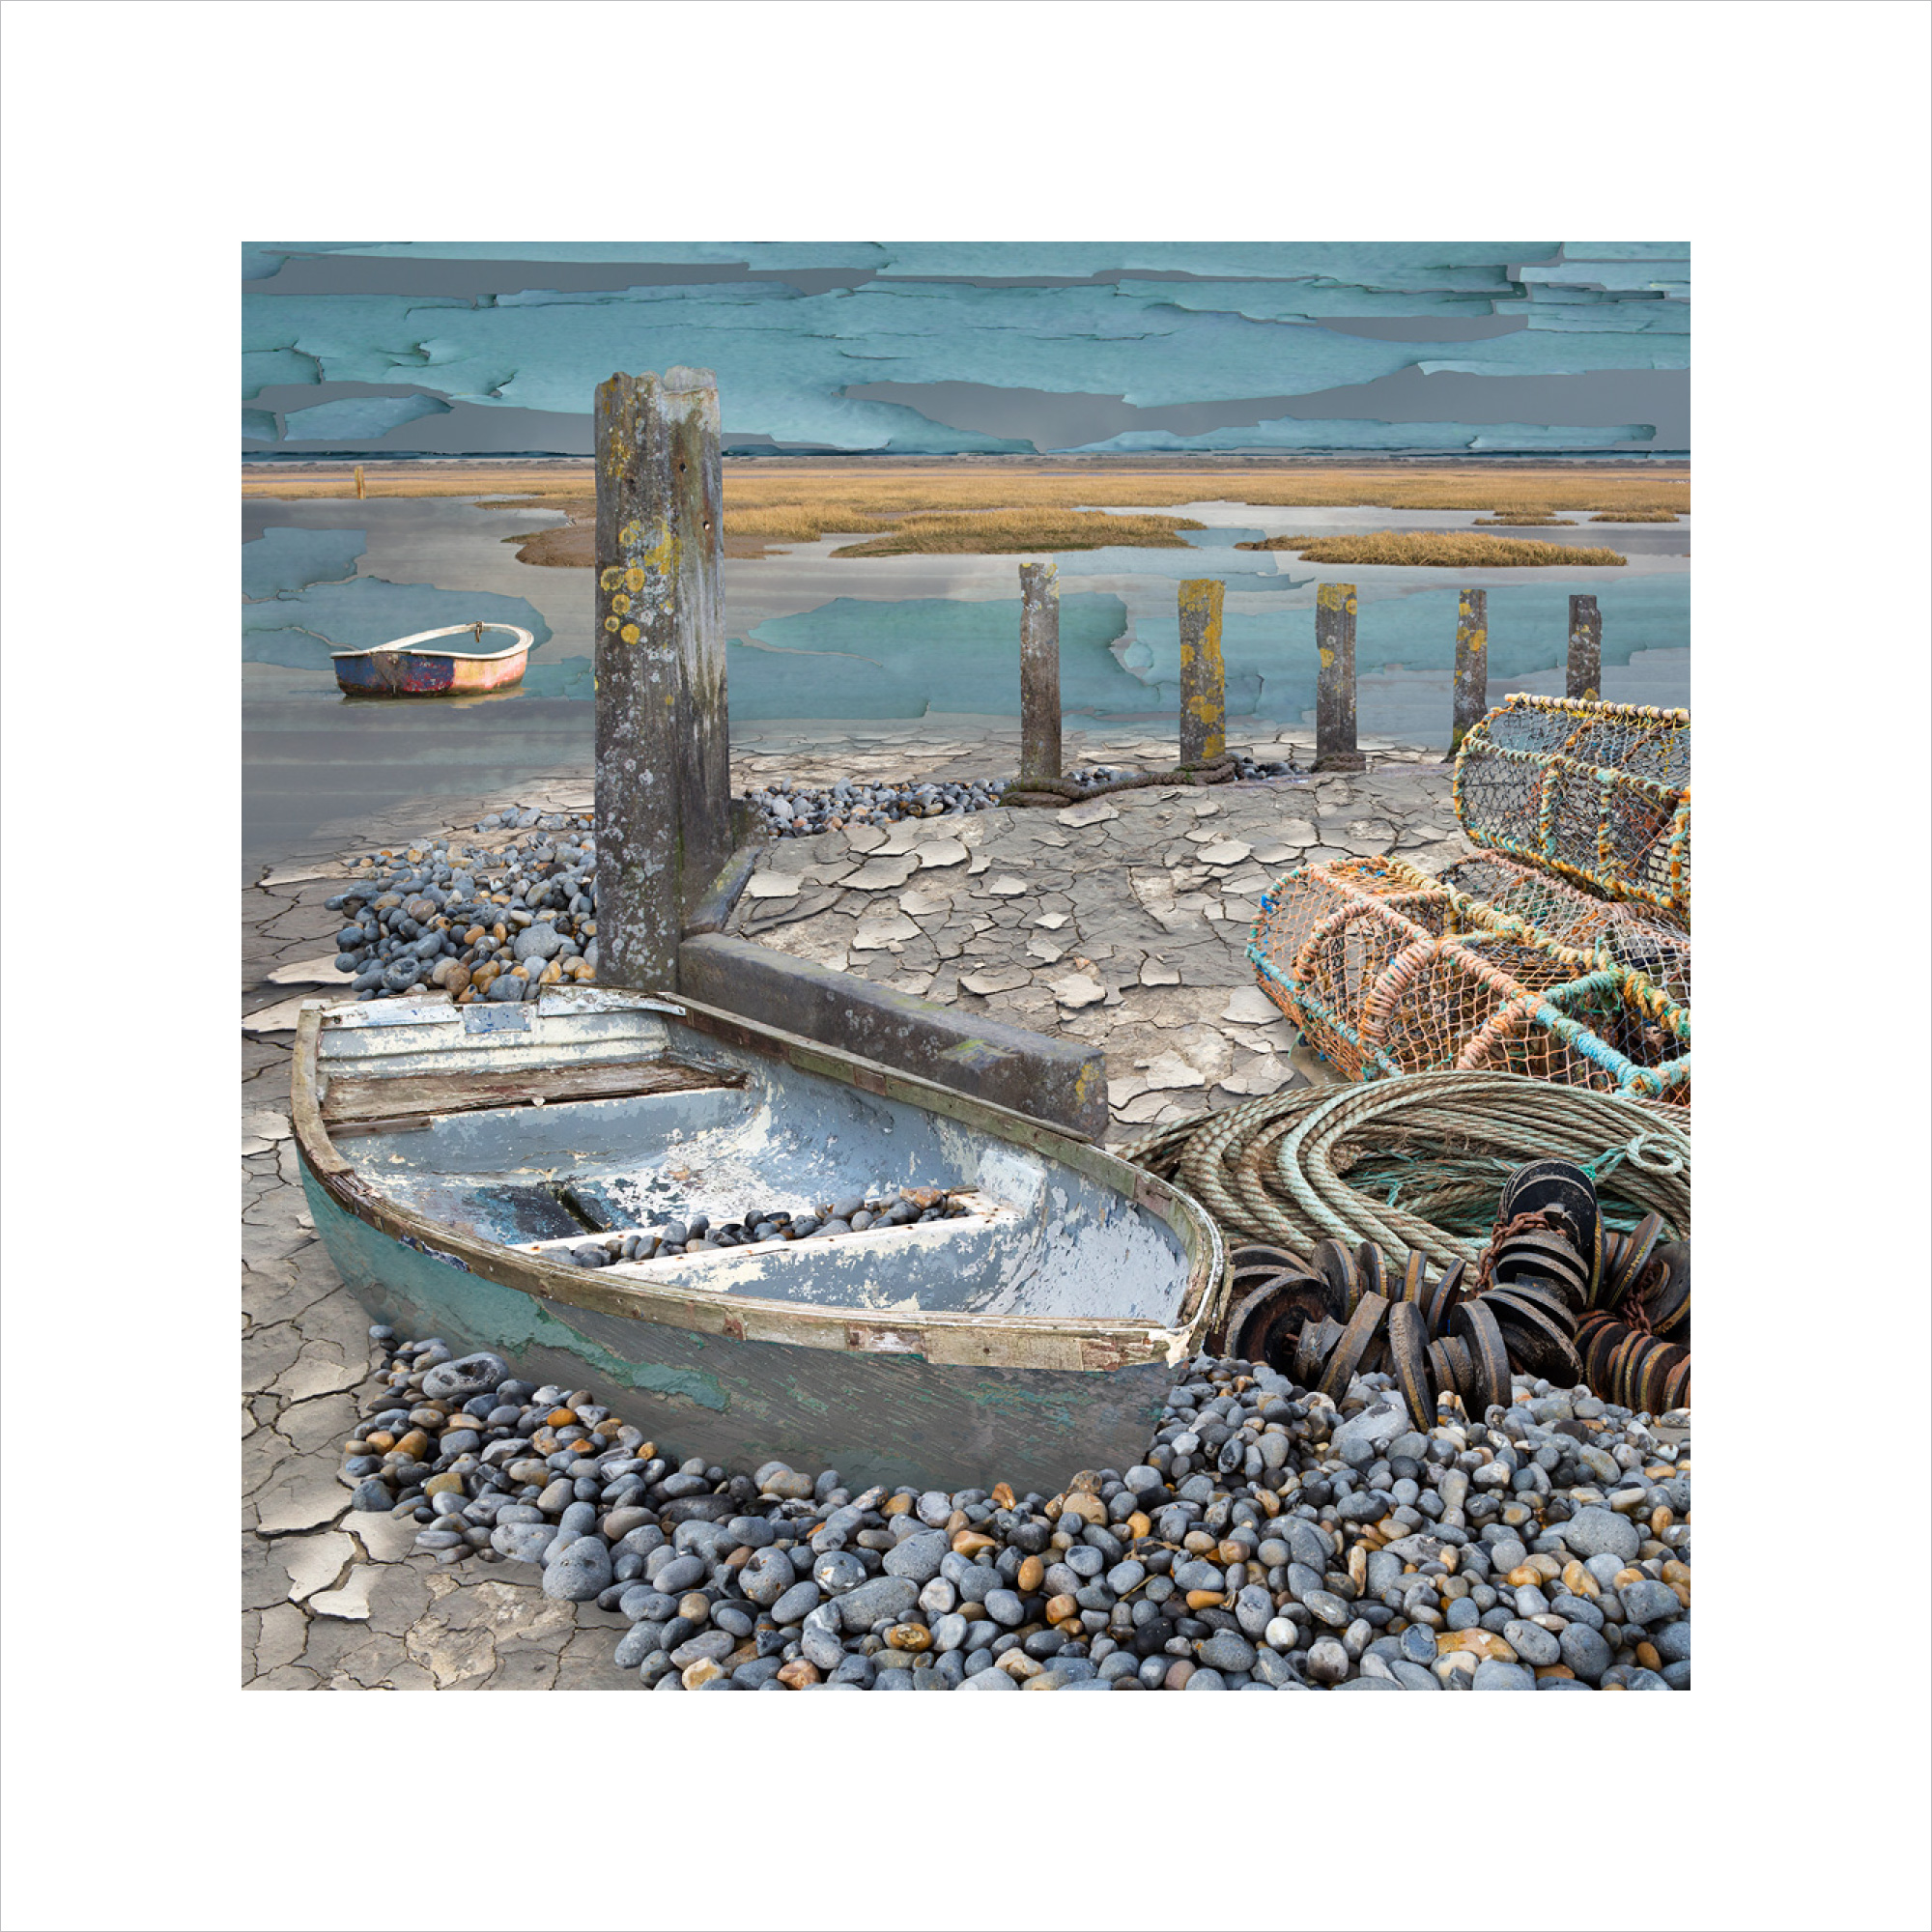 Claire Gill, Limited edition prints, digital photomontage, fine art prints, hahnemuhle, coastal art, Collect Art, seascape 59, North Norfolk